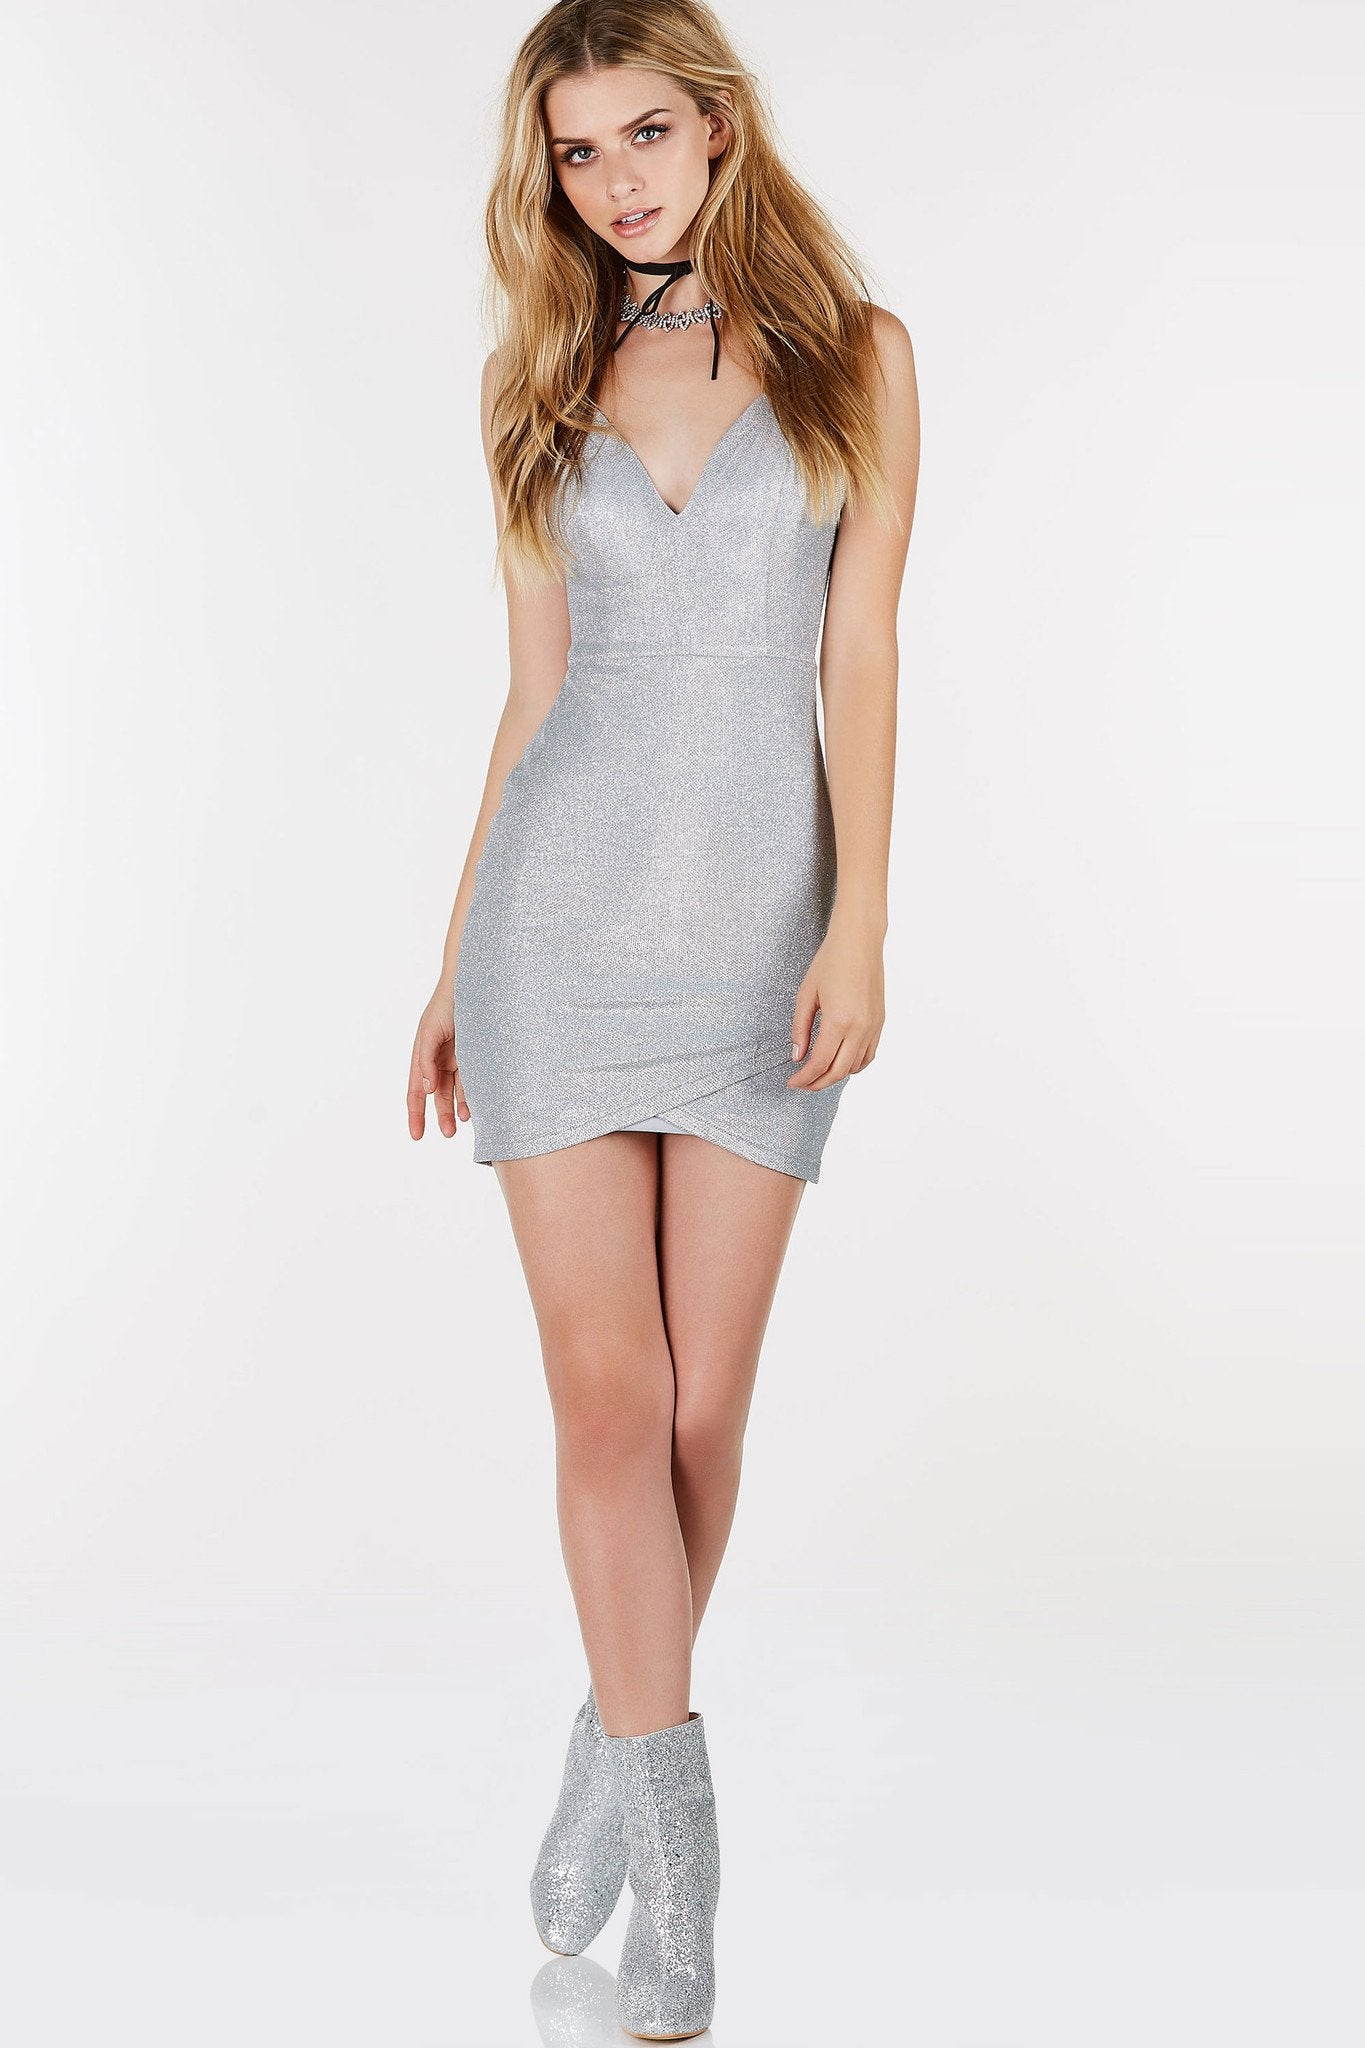 Deep V-neckline mini dress with open back and strappy detailing. Envelope style hem with glitter finish throughout.